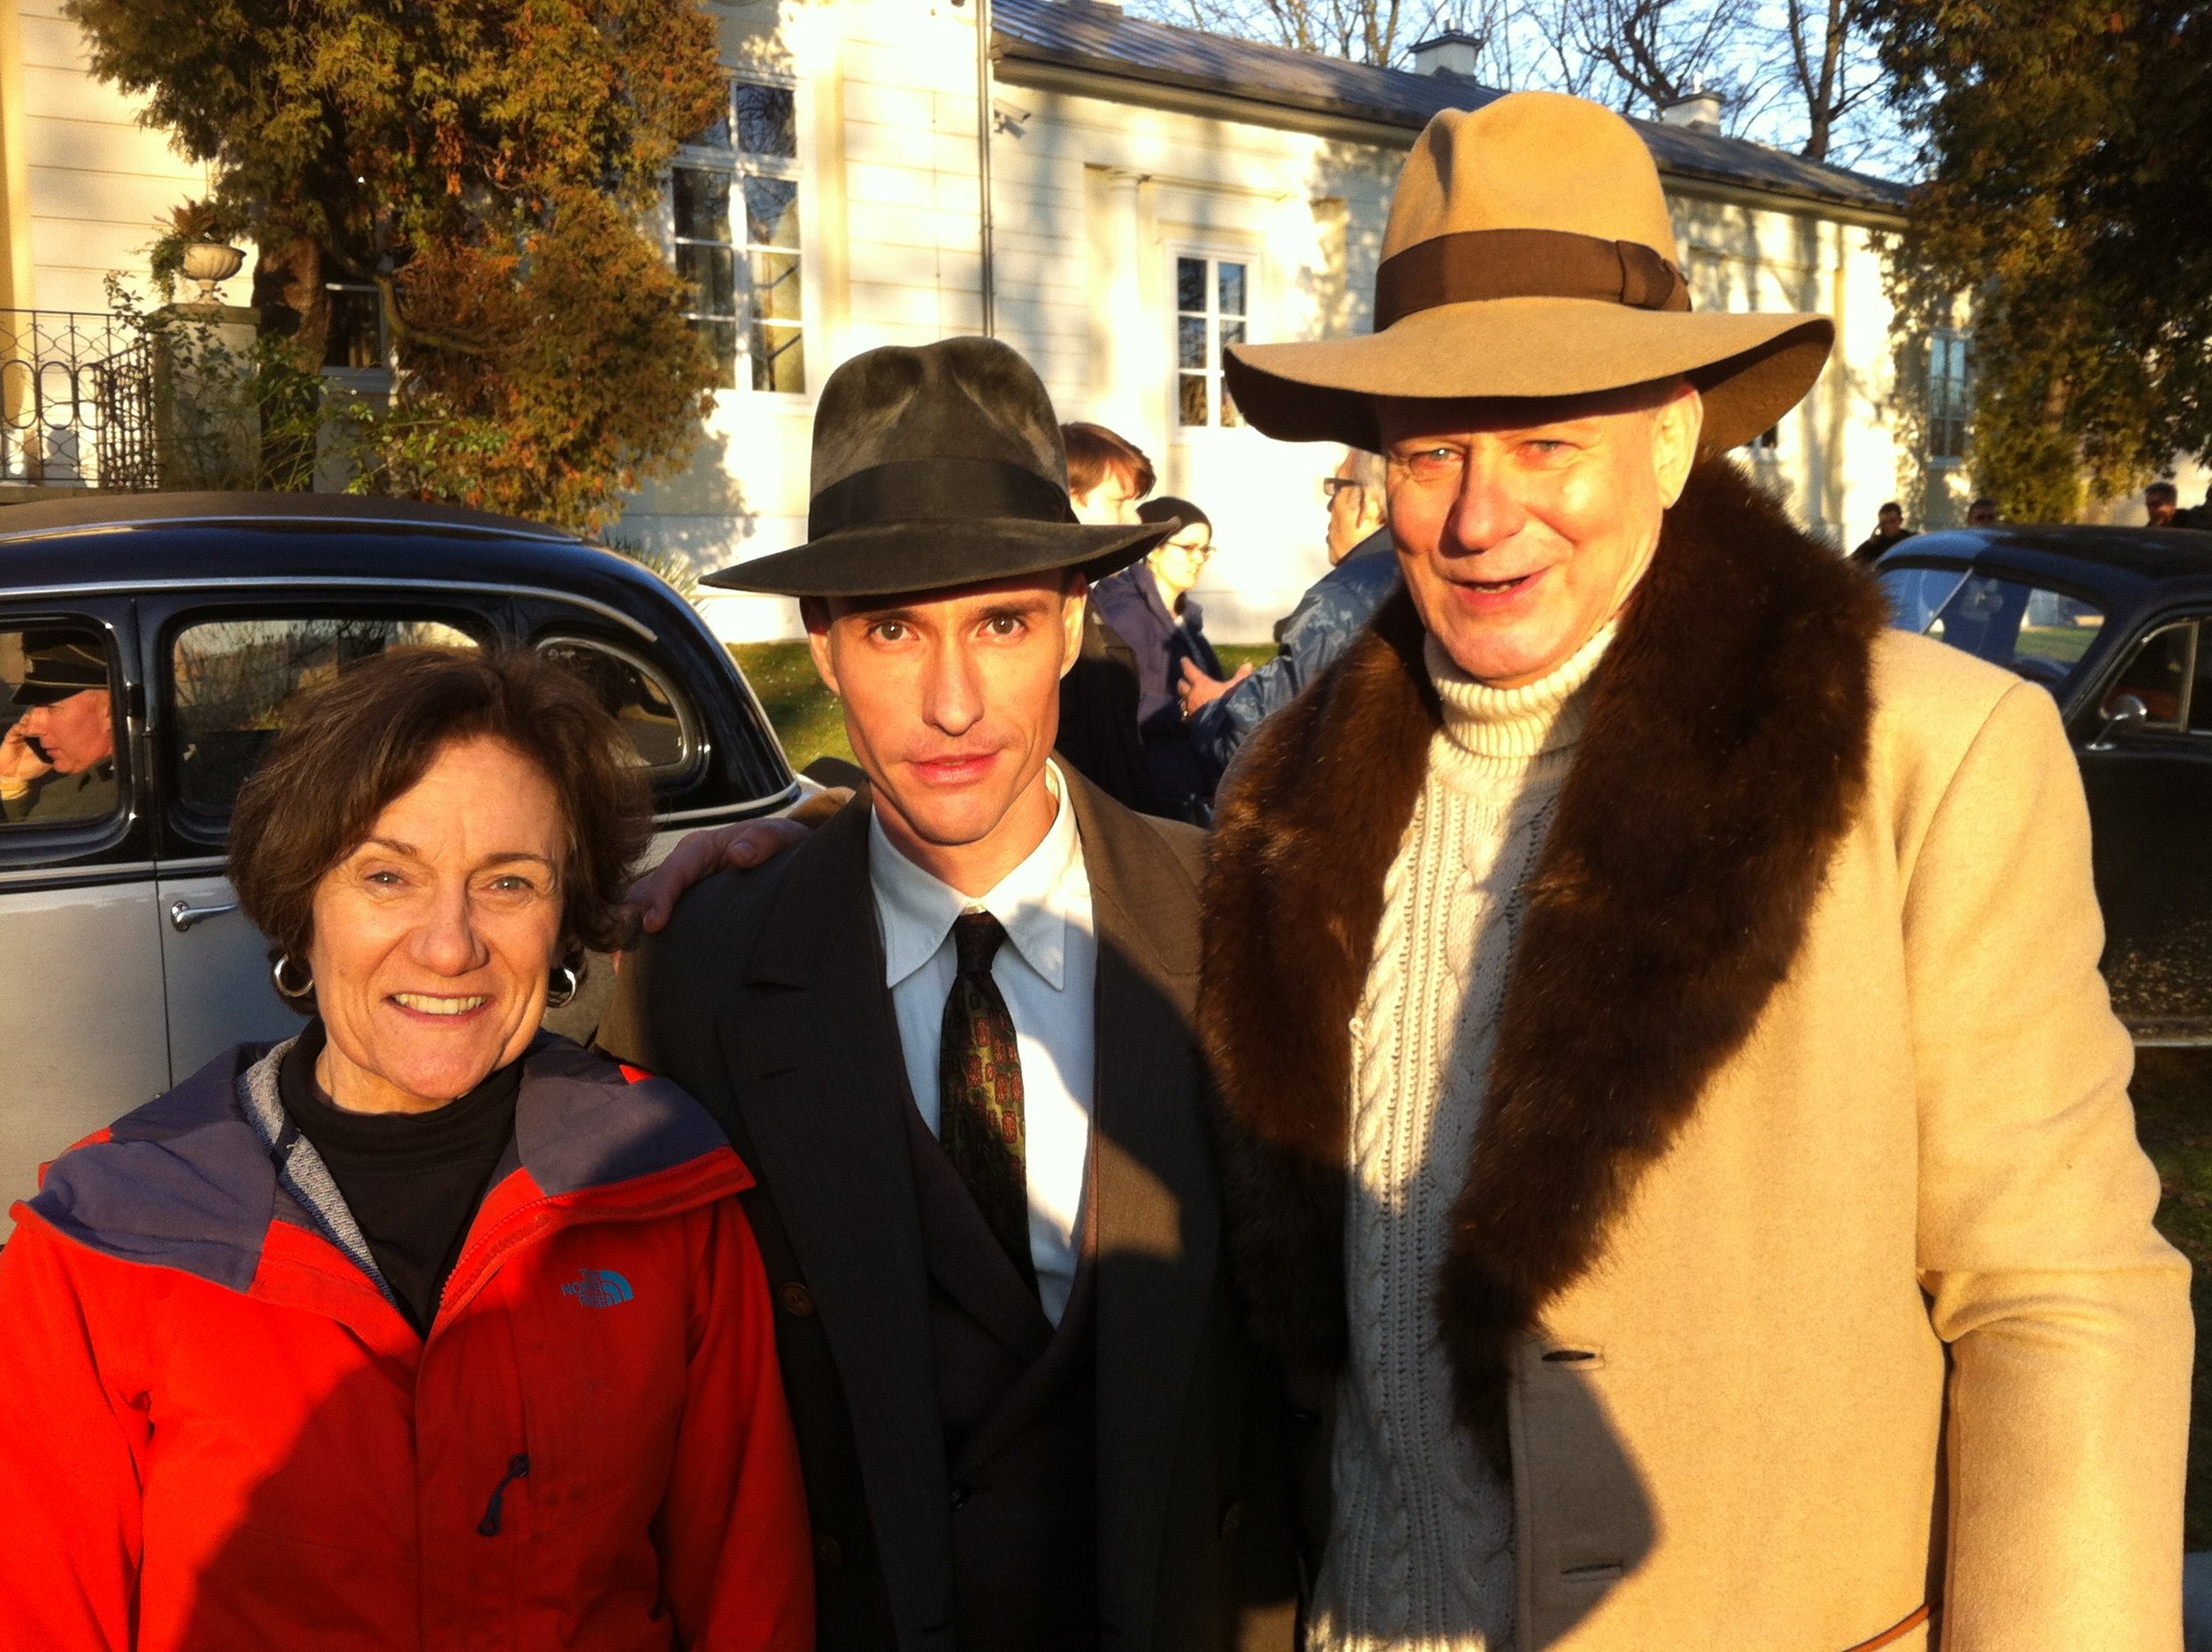 w/ Director Martha Coolidge and Stellan Skarsgard on set in Krakow